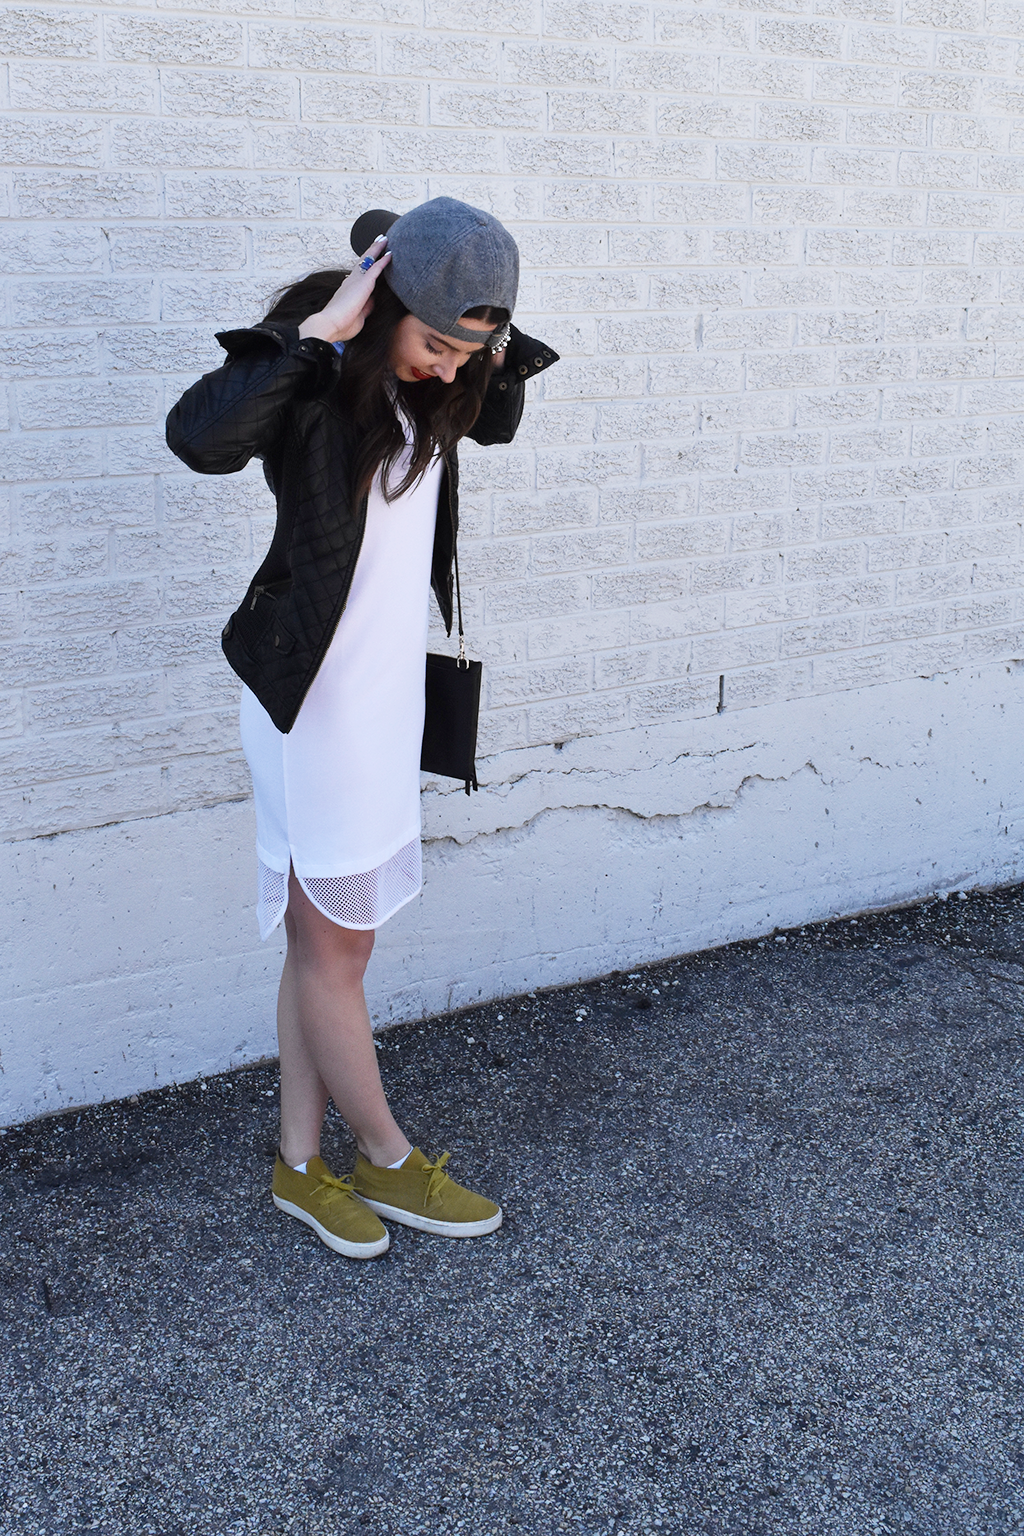 Everyday Athleisure | Forever 21 White Mesh Dress, Zara Black Leather Jacket, J.Crew Leather Hat, Vince Green Tennis Shoes, Coach Bag